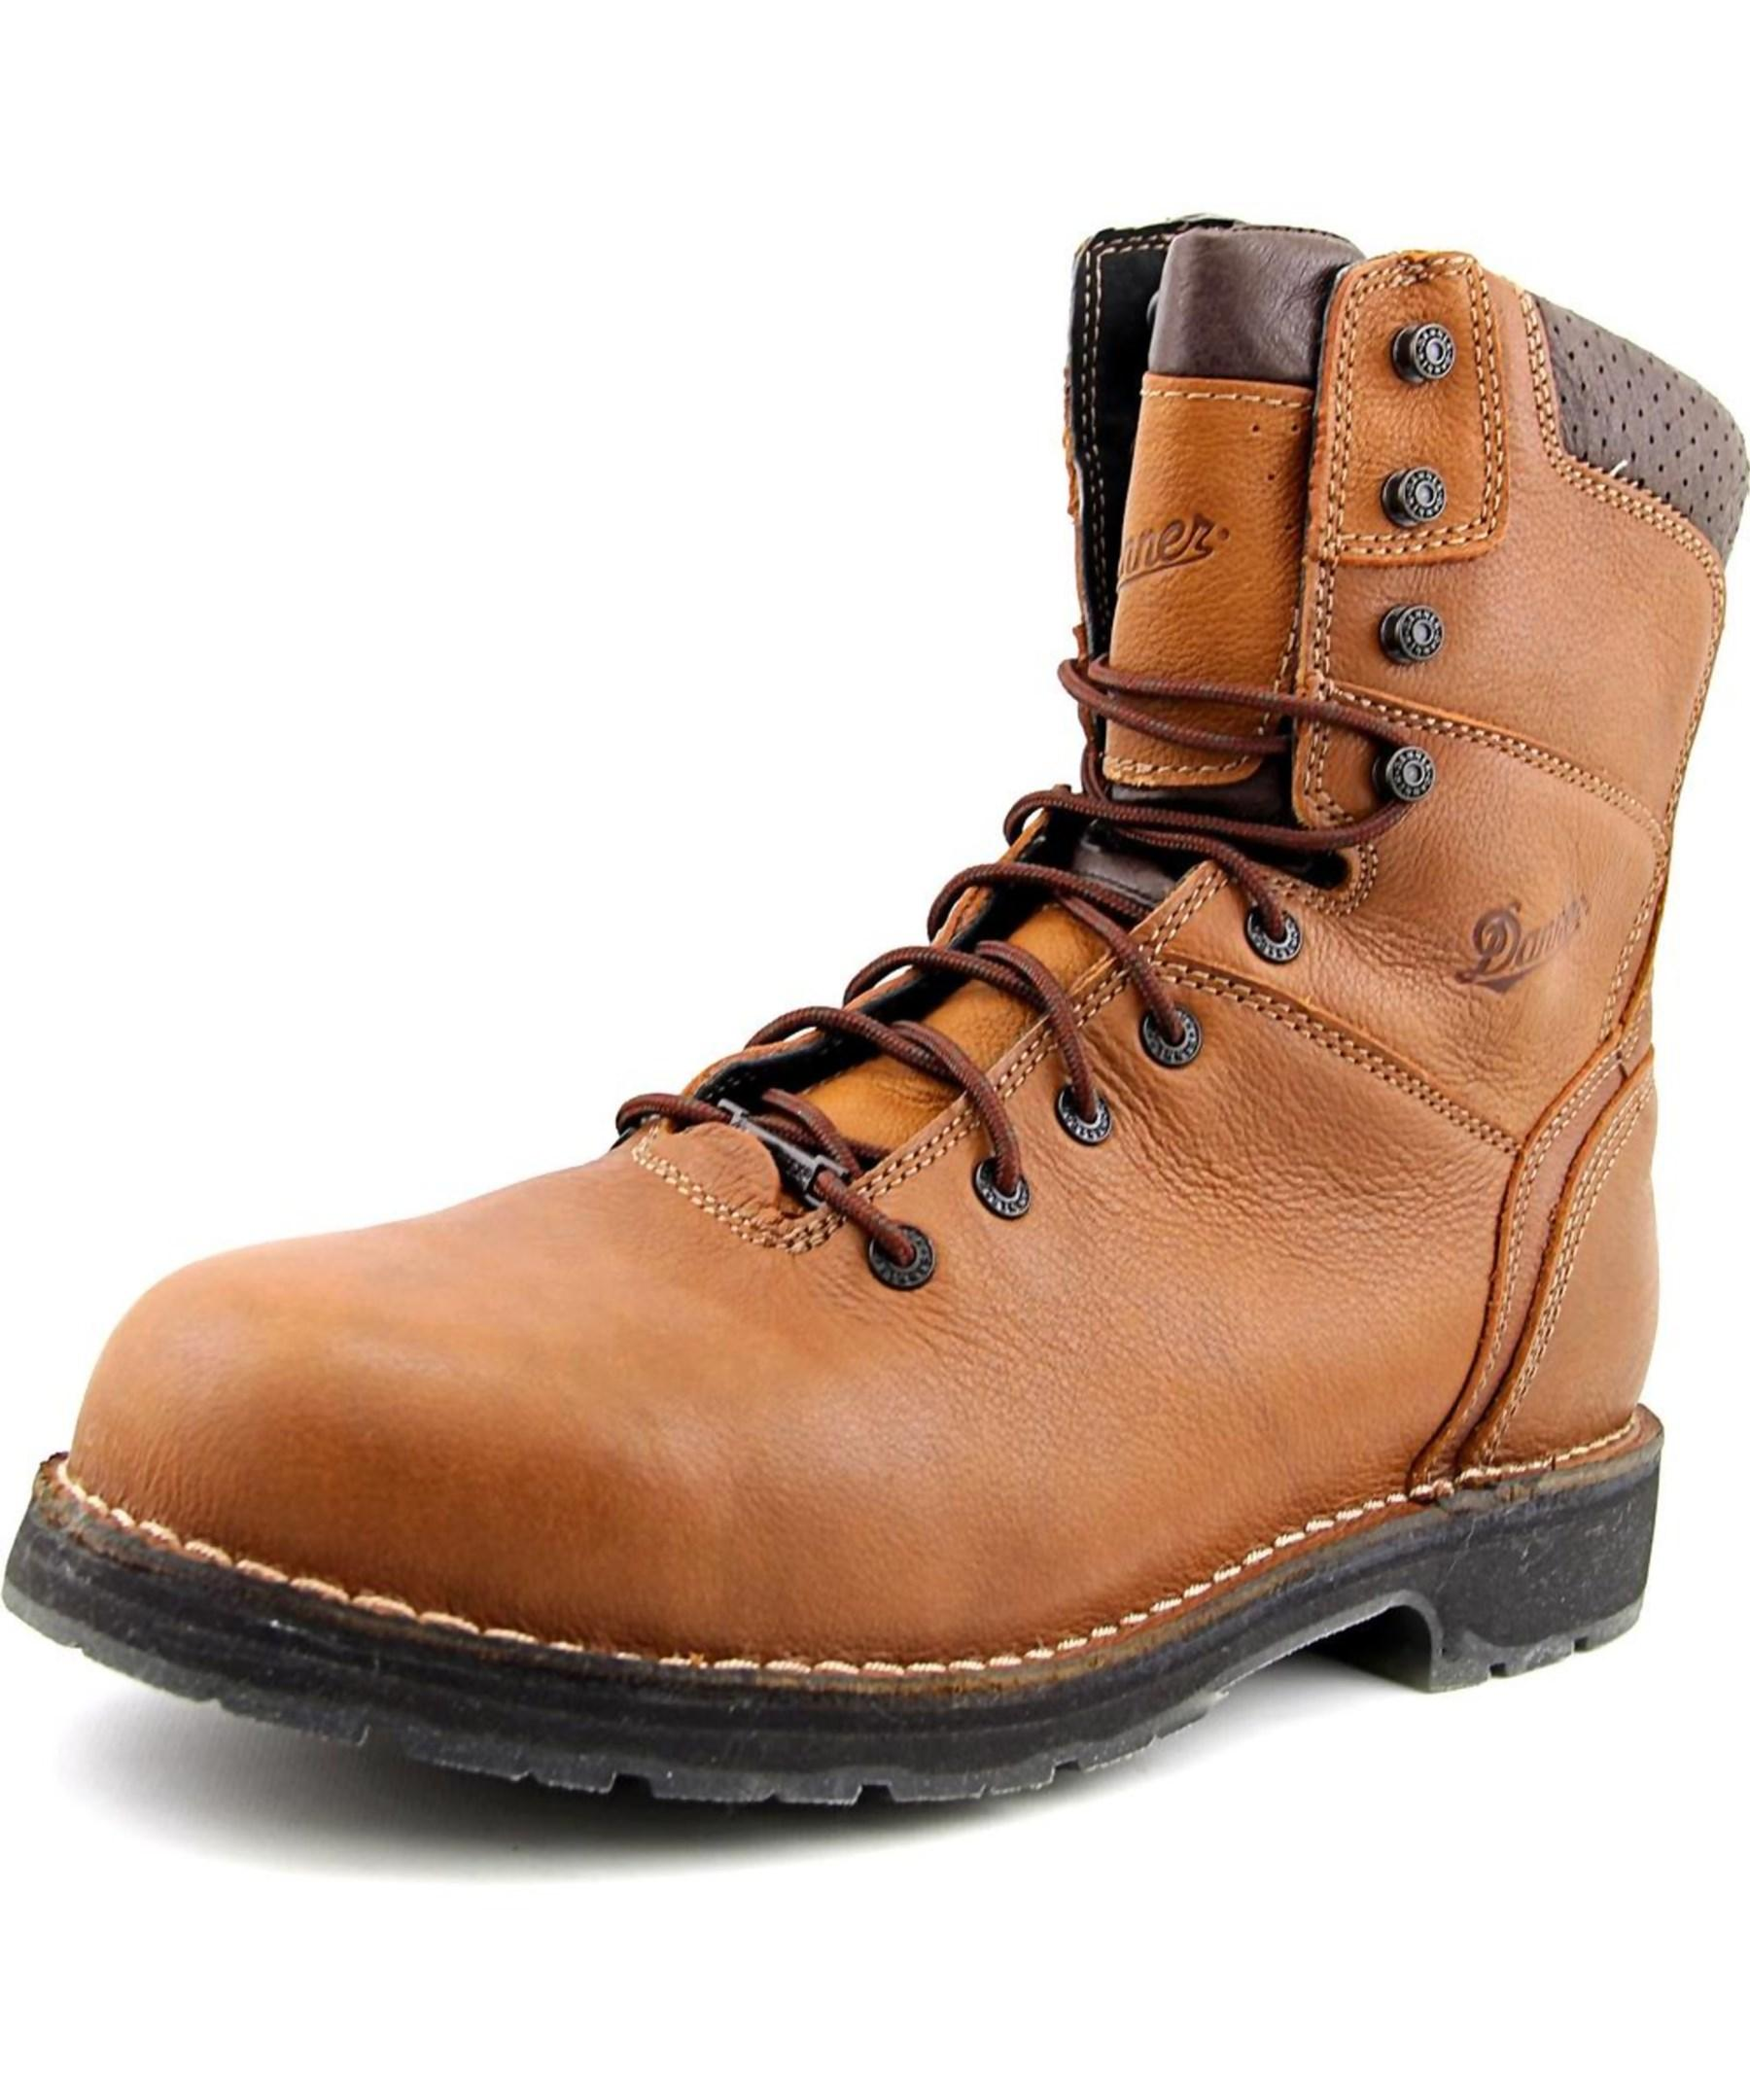 Danner Workman Gtx 8 Quot Men Steel Toe Leather Brown Work